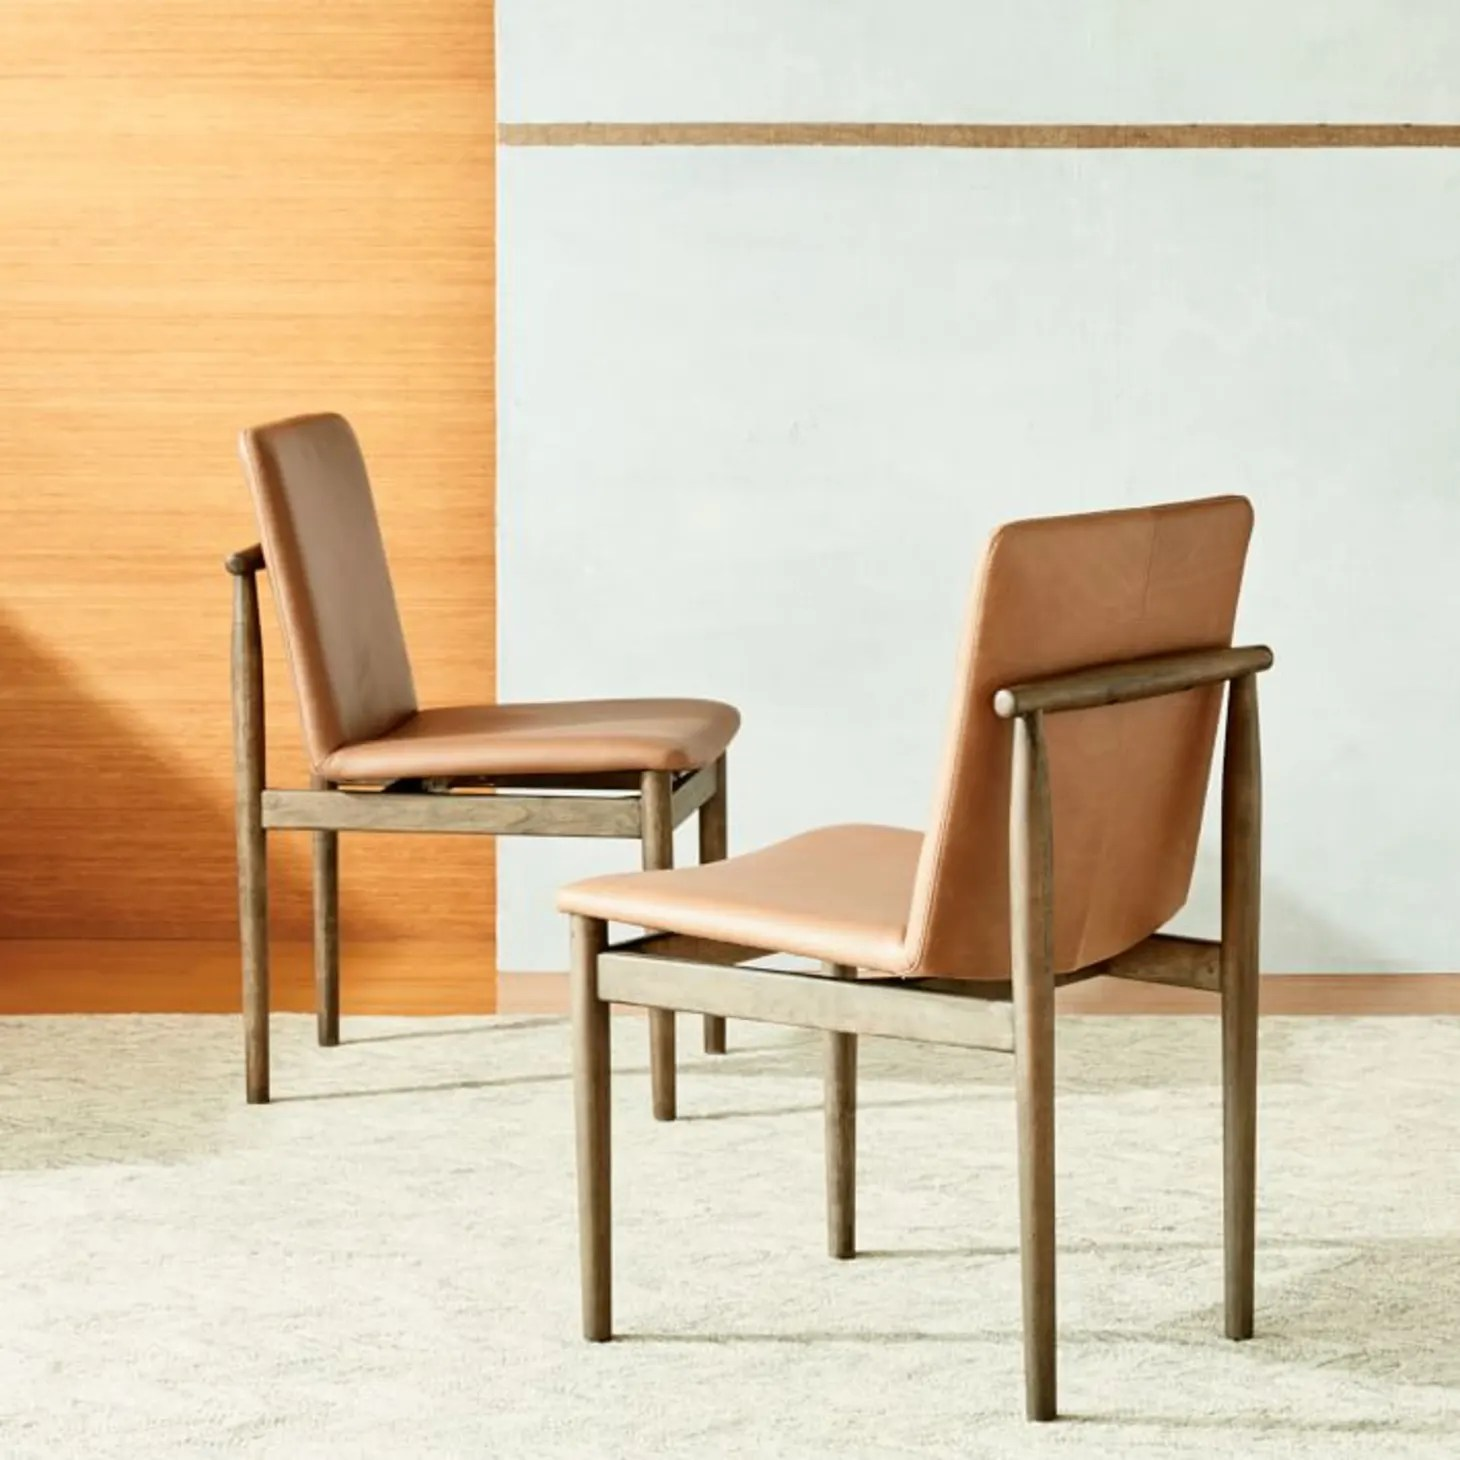 Low Medium High Upholstered Dining Chairs For Any Budget